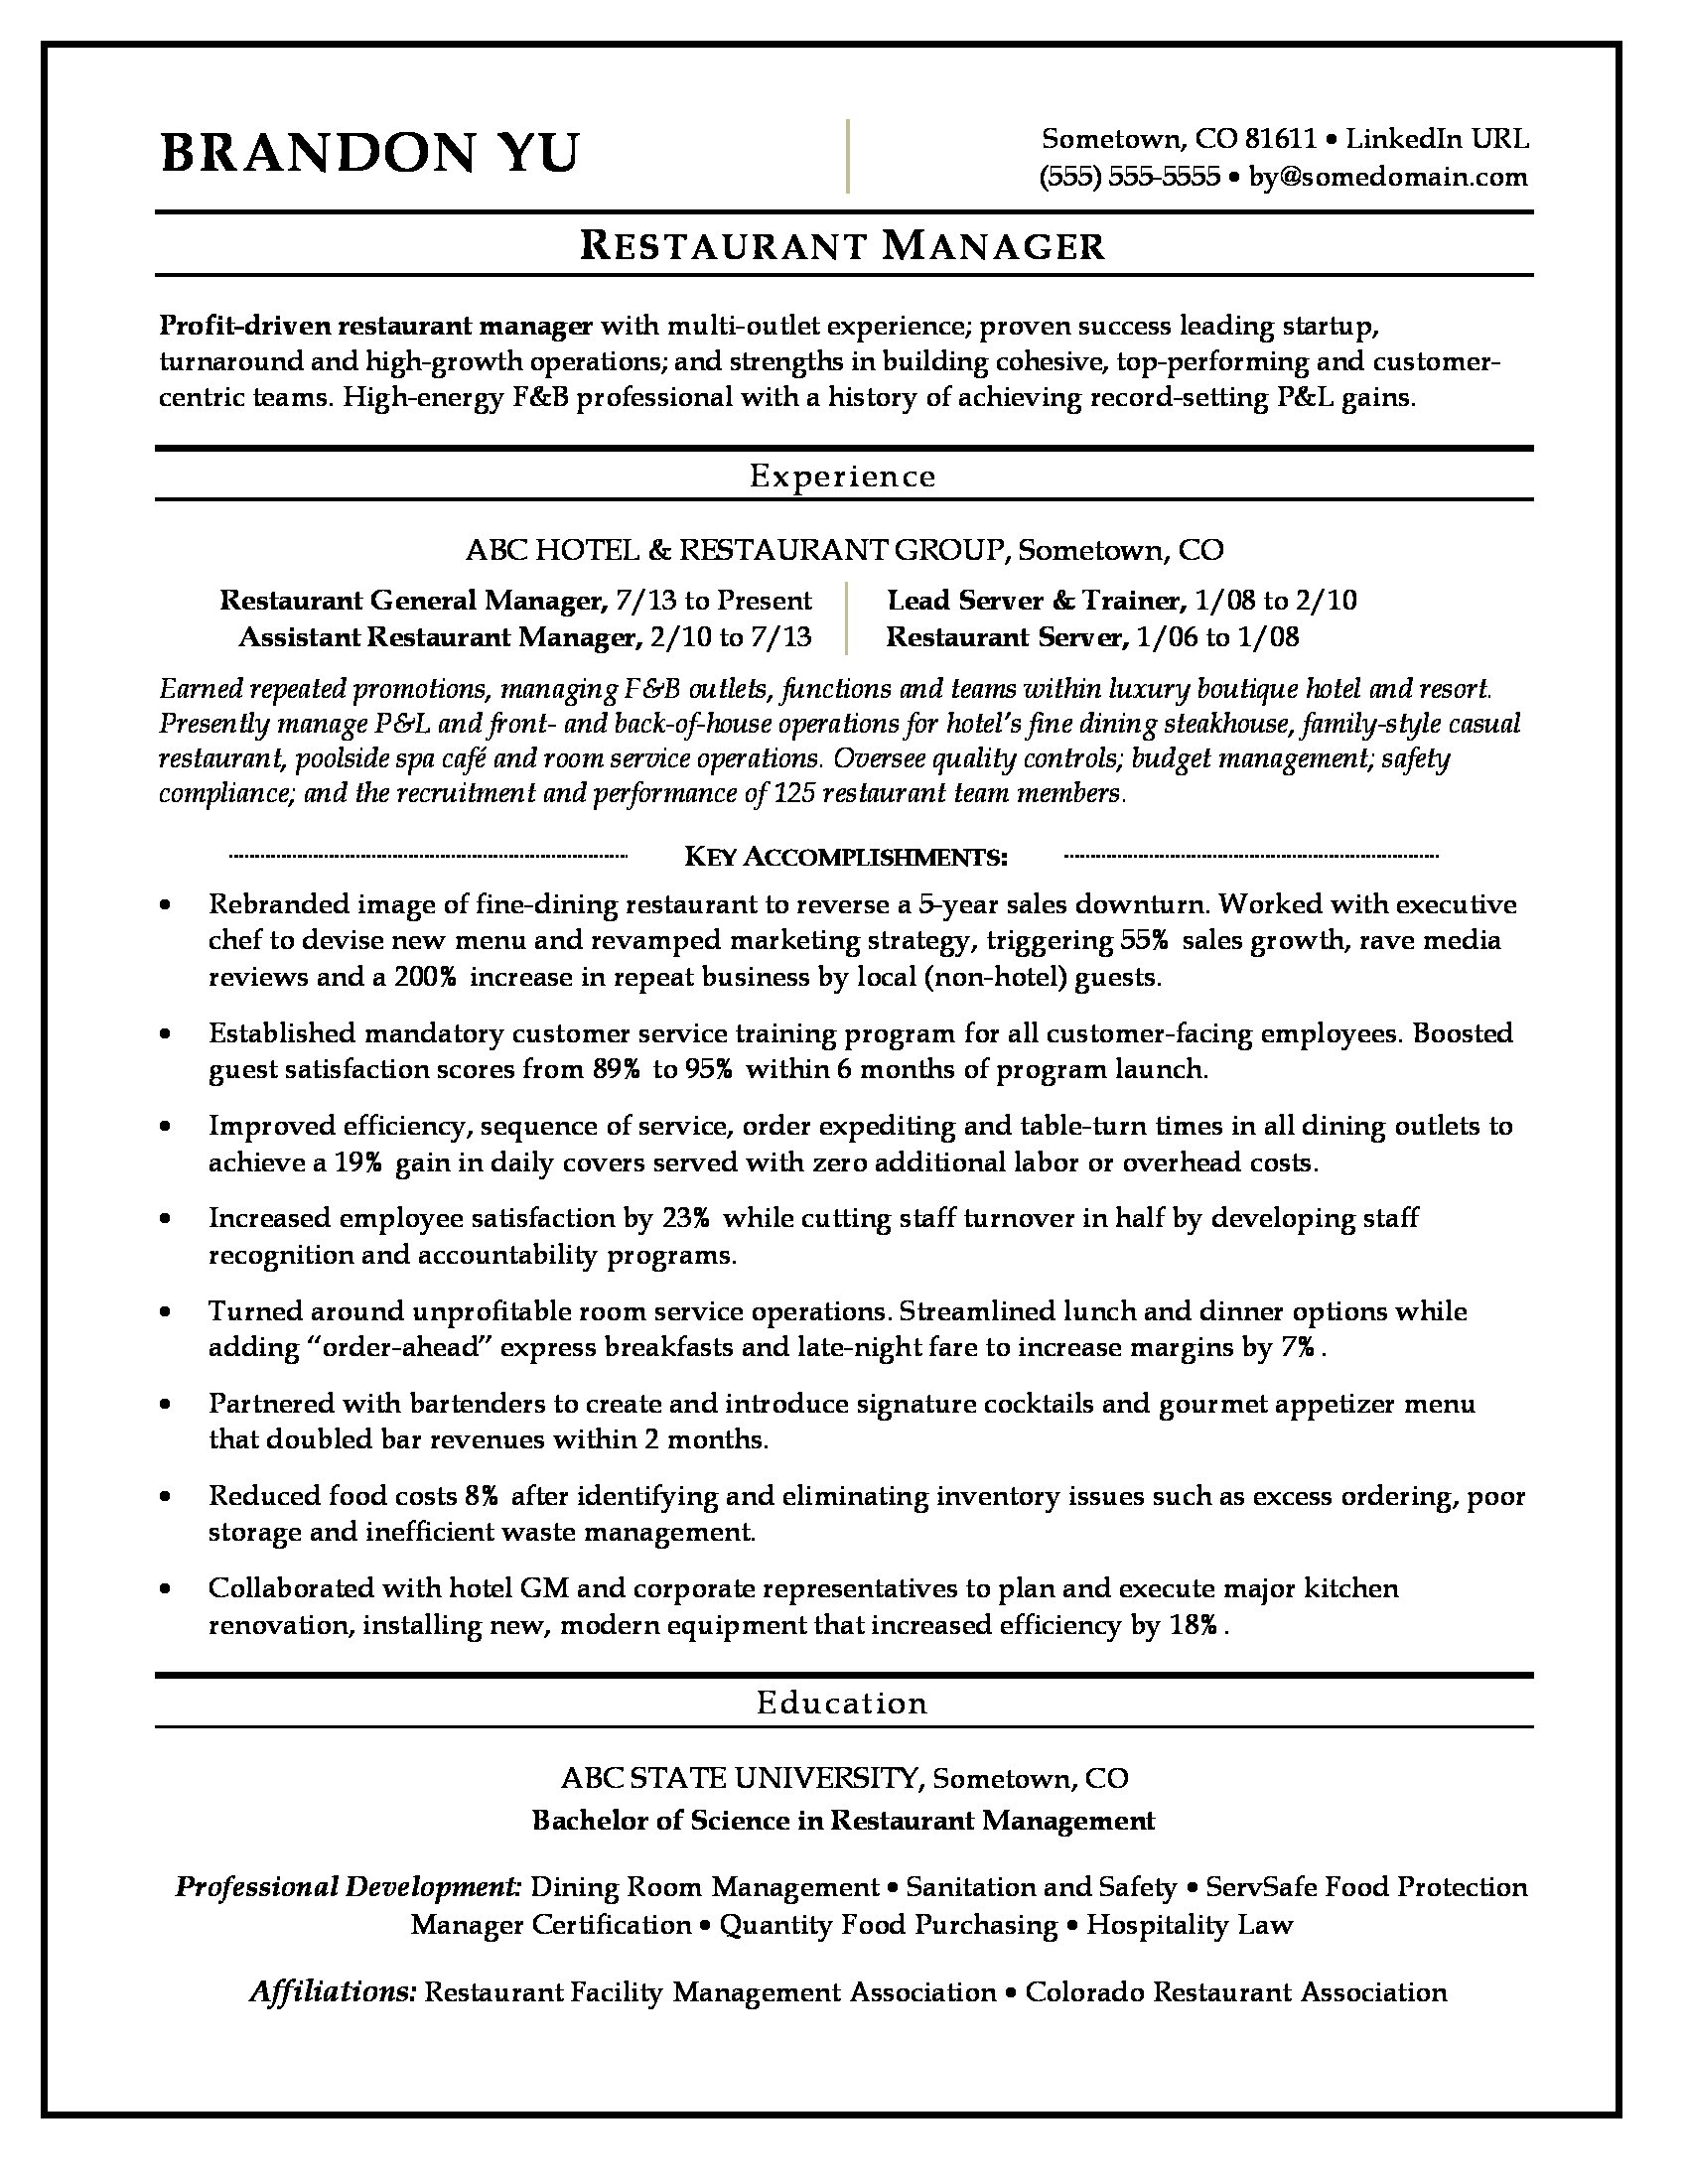 resume Resume Management Experience restaurant manager resume sample monster com for a manager